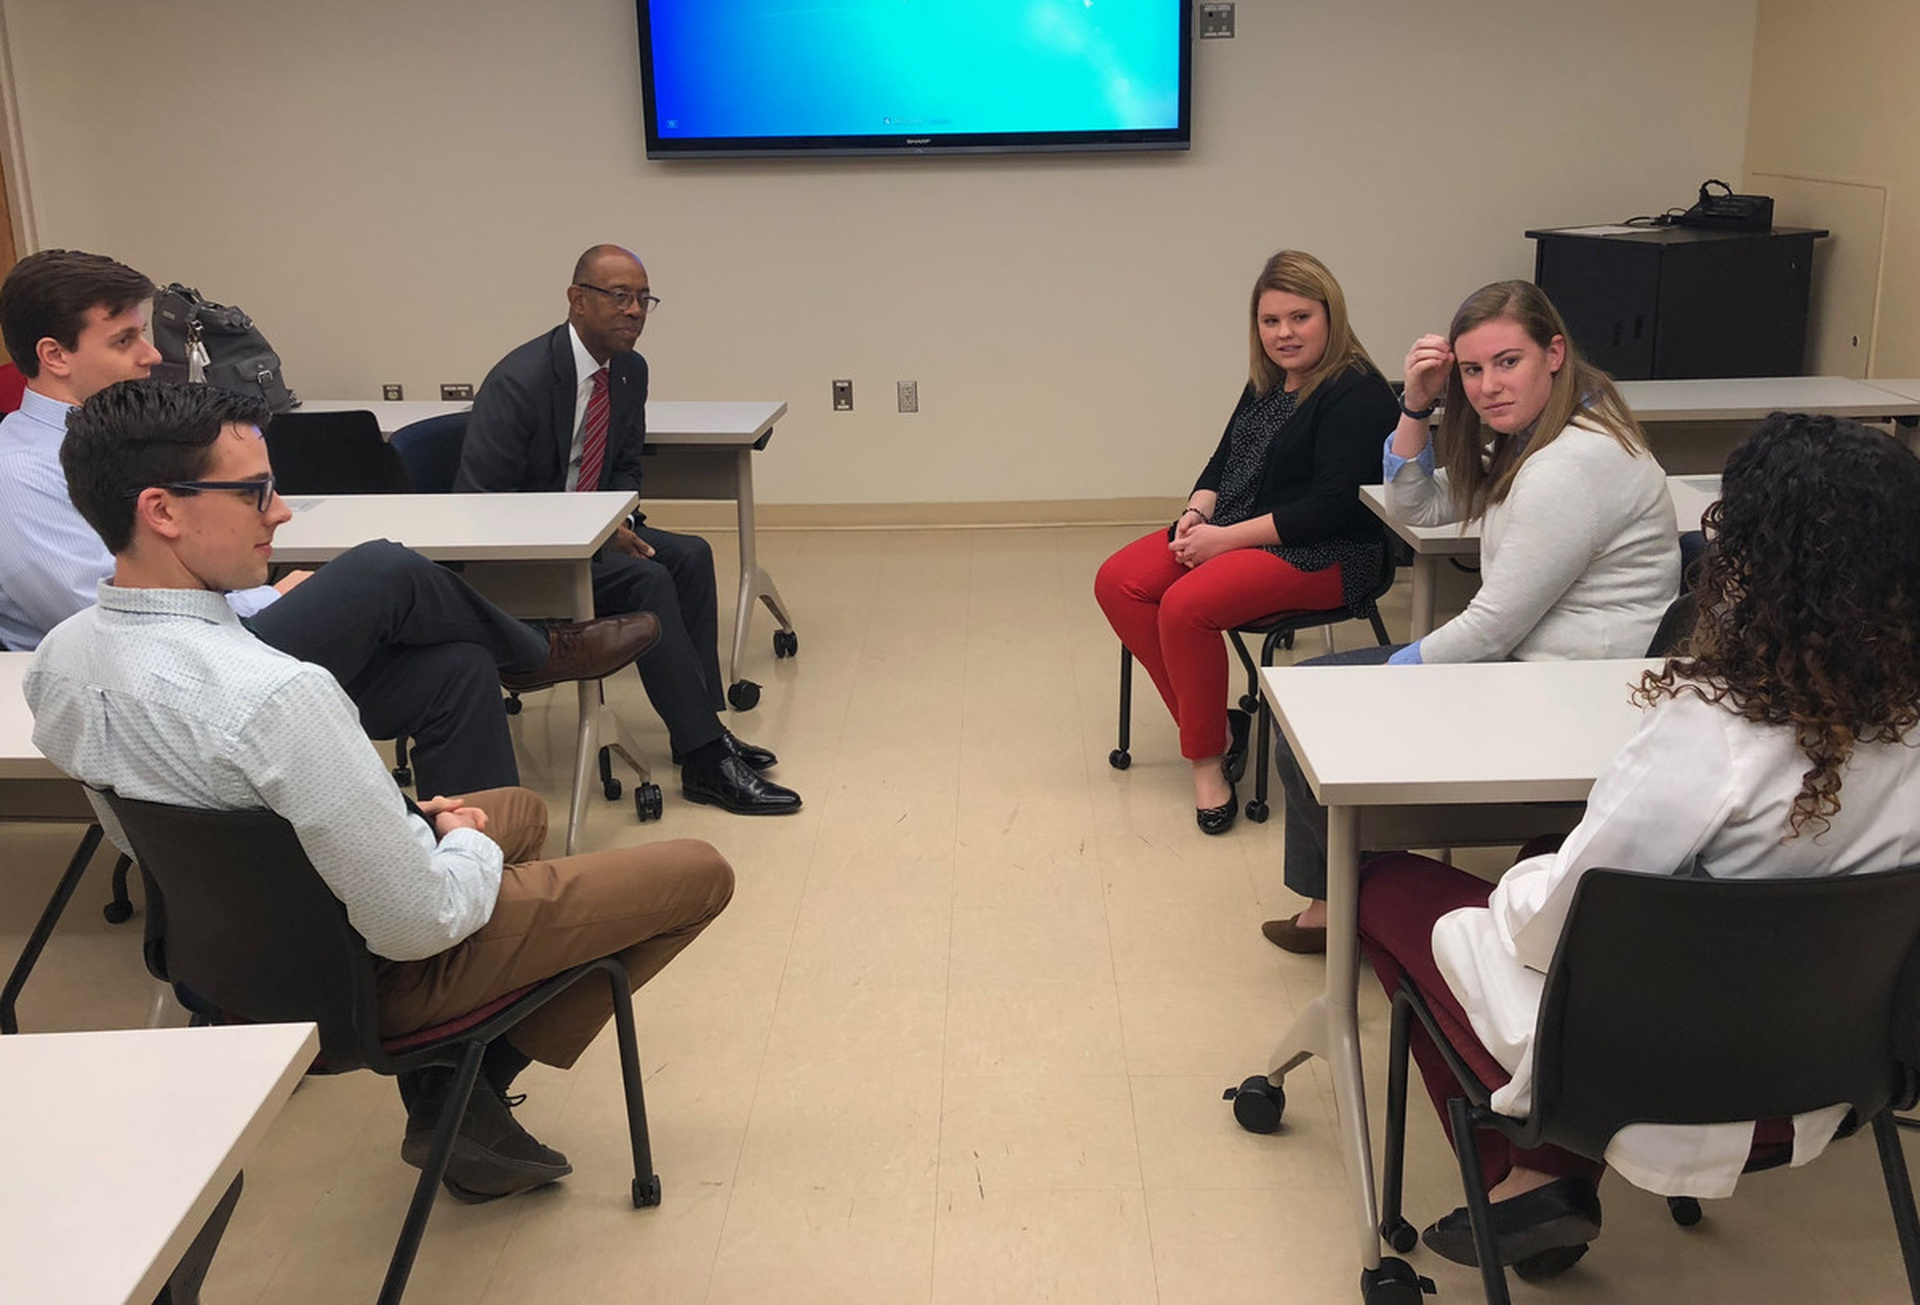 President Drake meets with optometry students. Photo by Gail Martineau